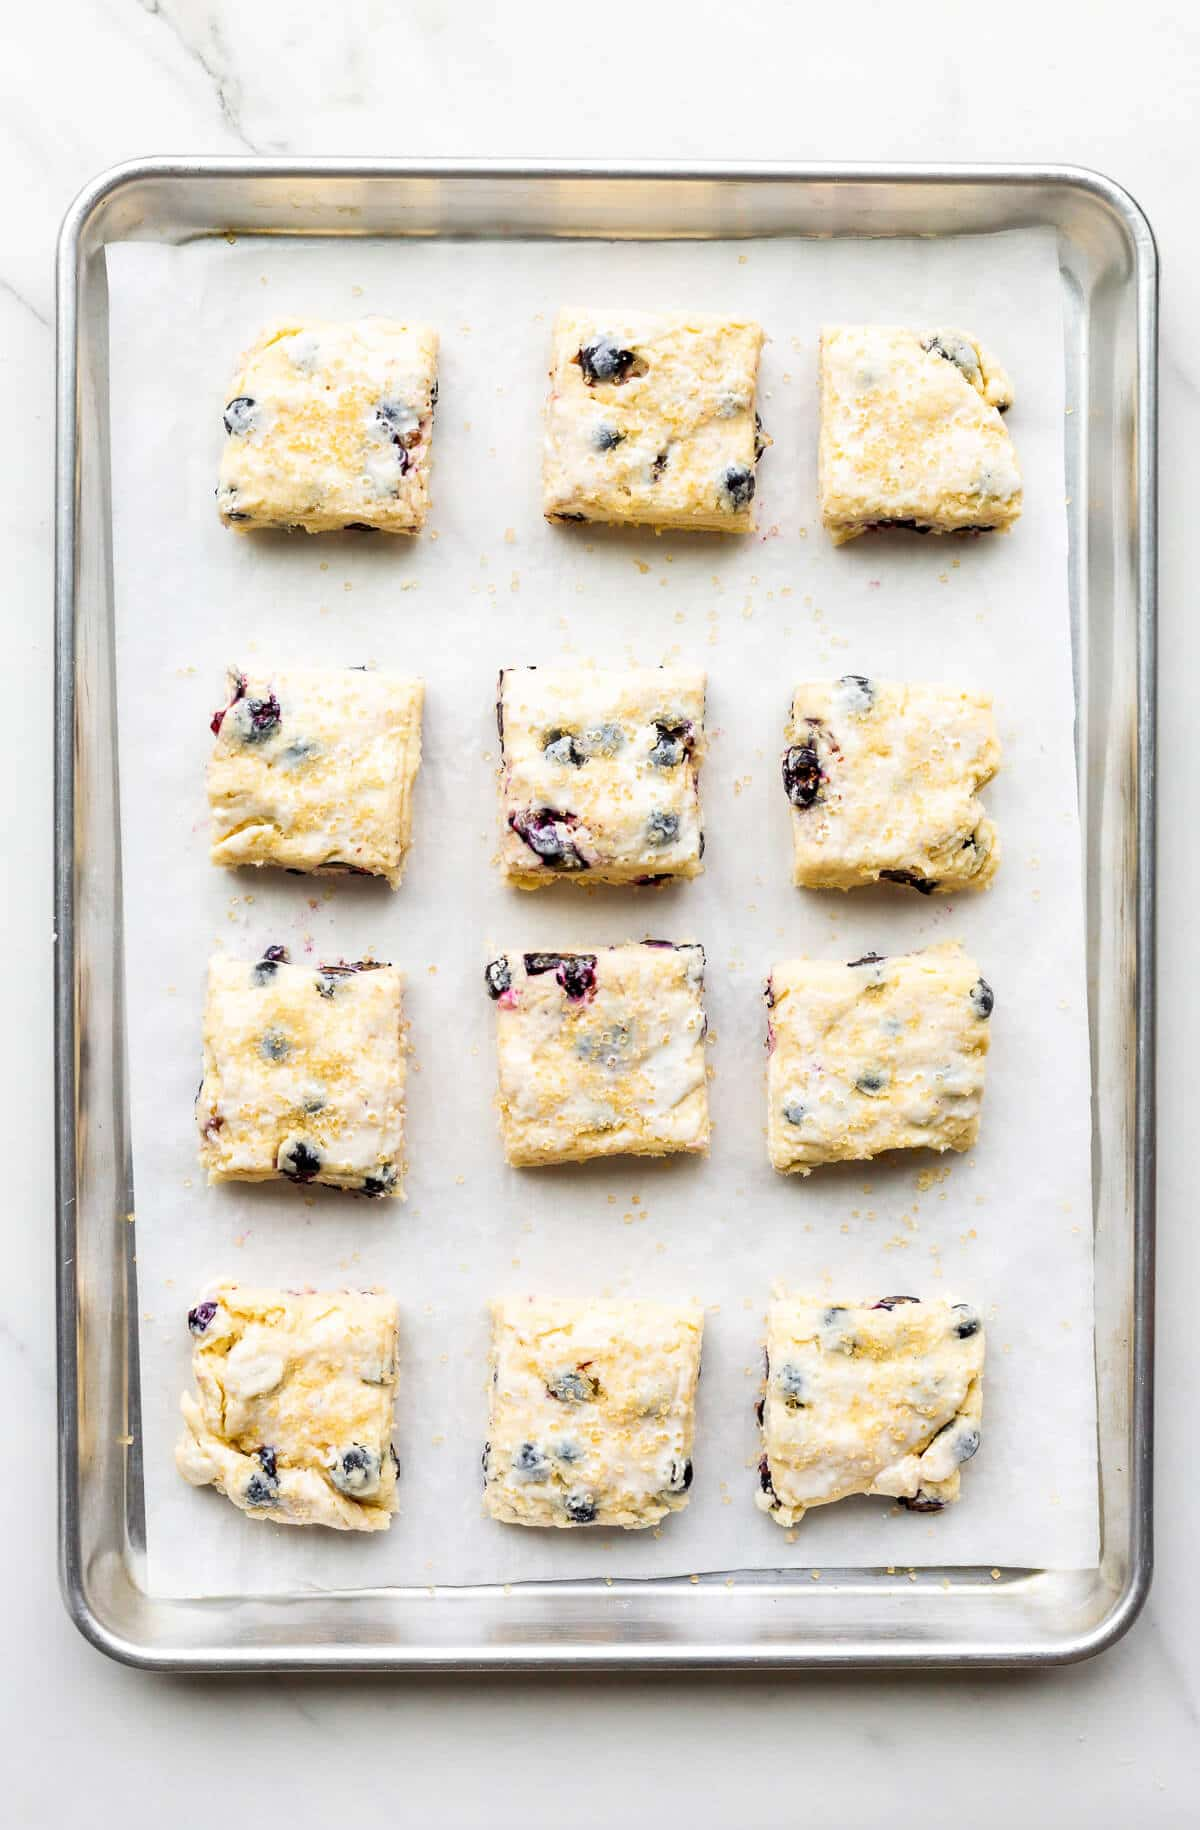 A sheet pan with scones with fresh blueberries before baking.